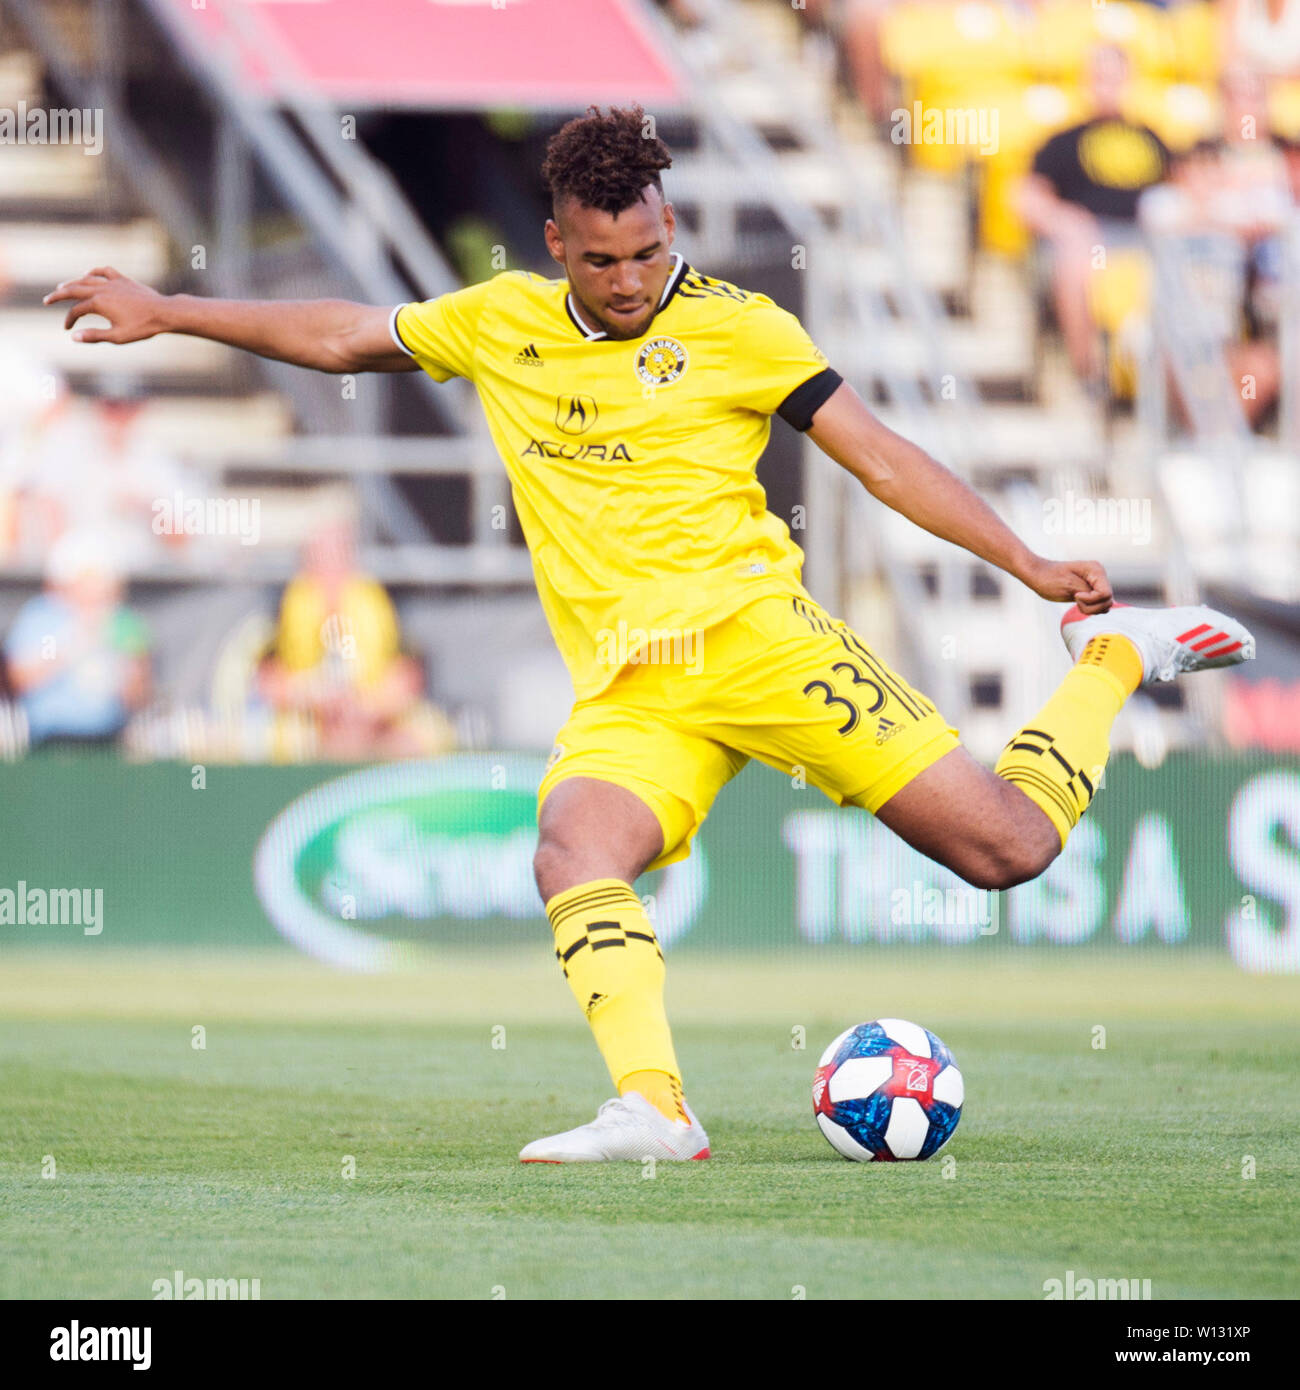 June 29, 2019: Columbus Crew SC forward JJ Williams (33) takes a shot on goal against Orlando City in their game in Columbus, Ohio, USA. Brent Clark/Alamy Live News - Stock Image